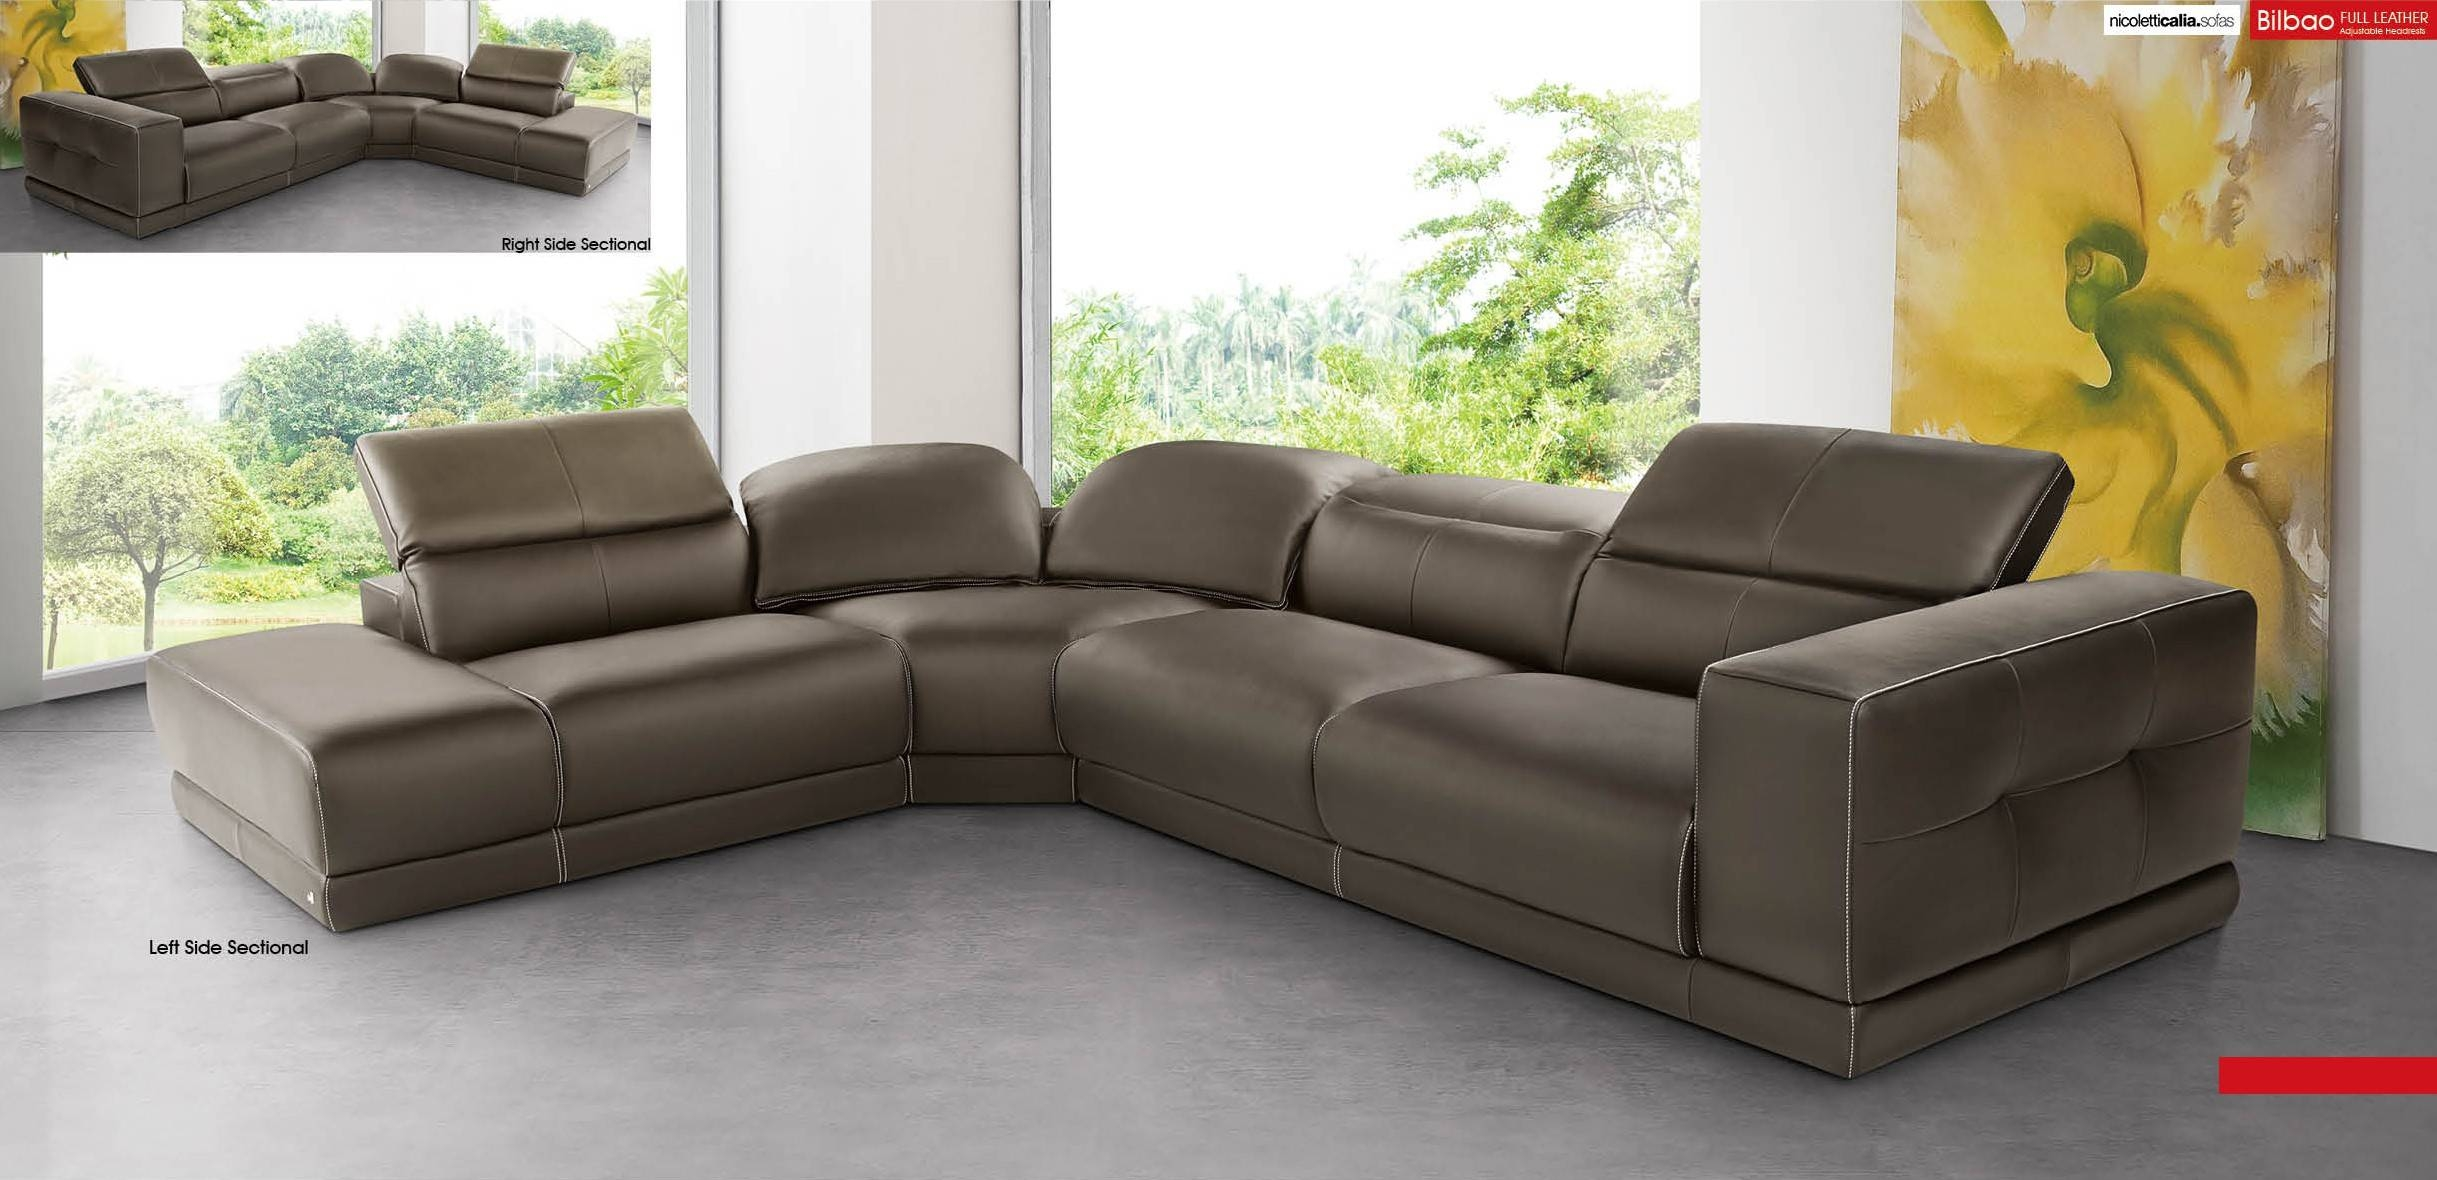 Appealing Sectional Sofas Cheap Prices 90 With Additional within Sofas Cheap Prices (Image 4 of 30)